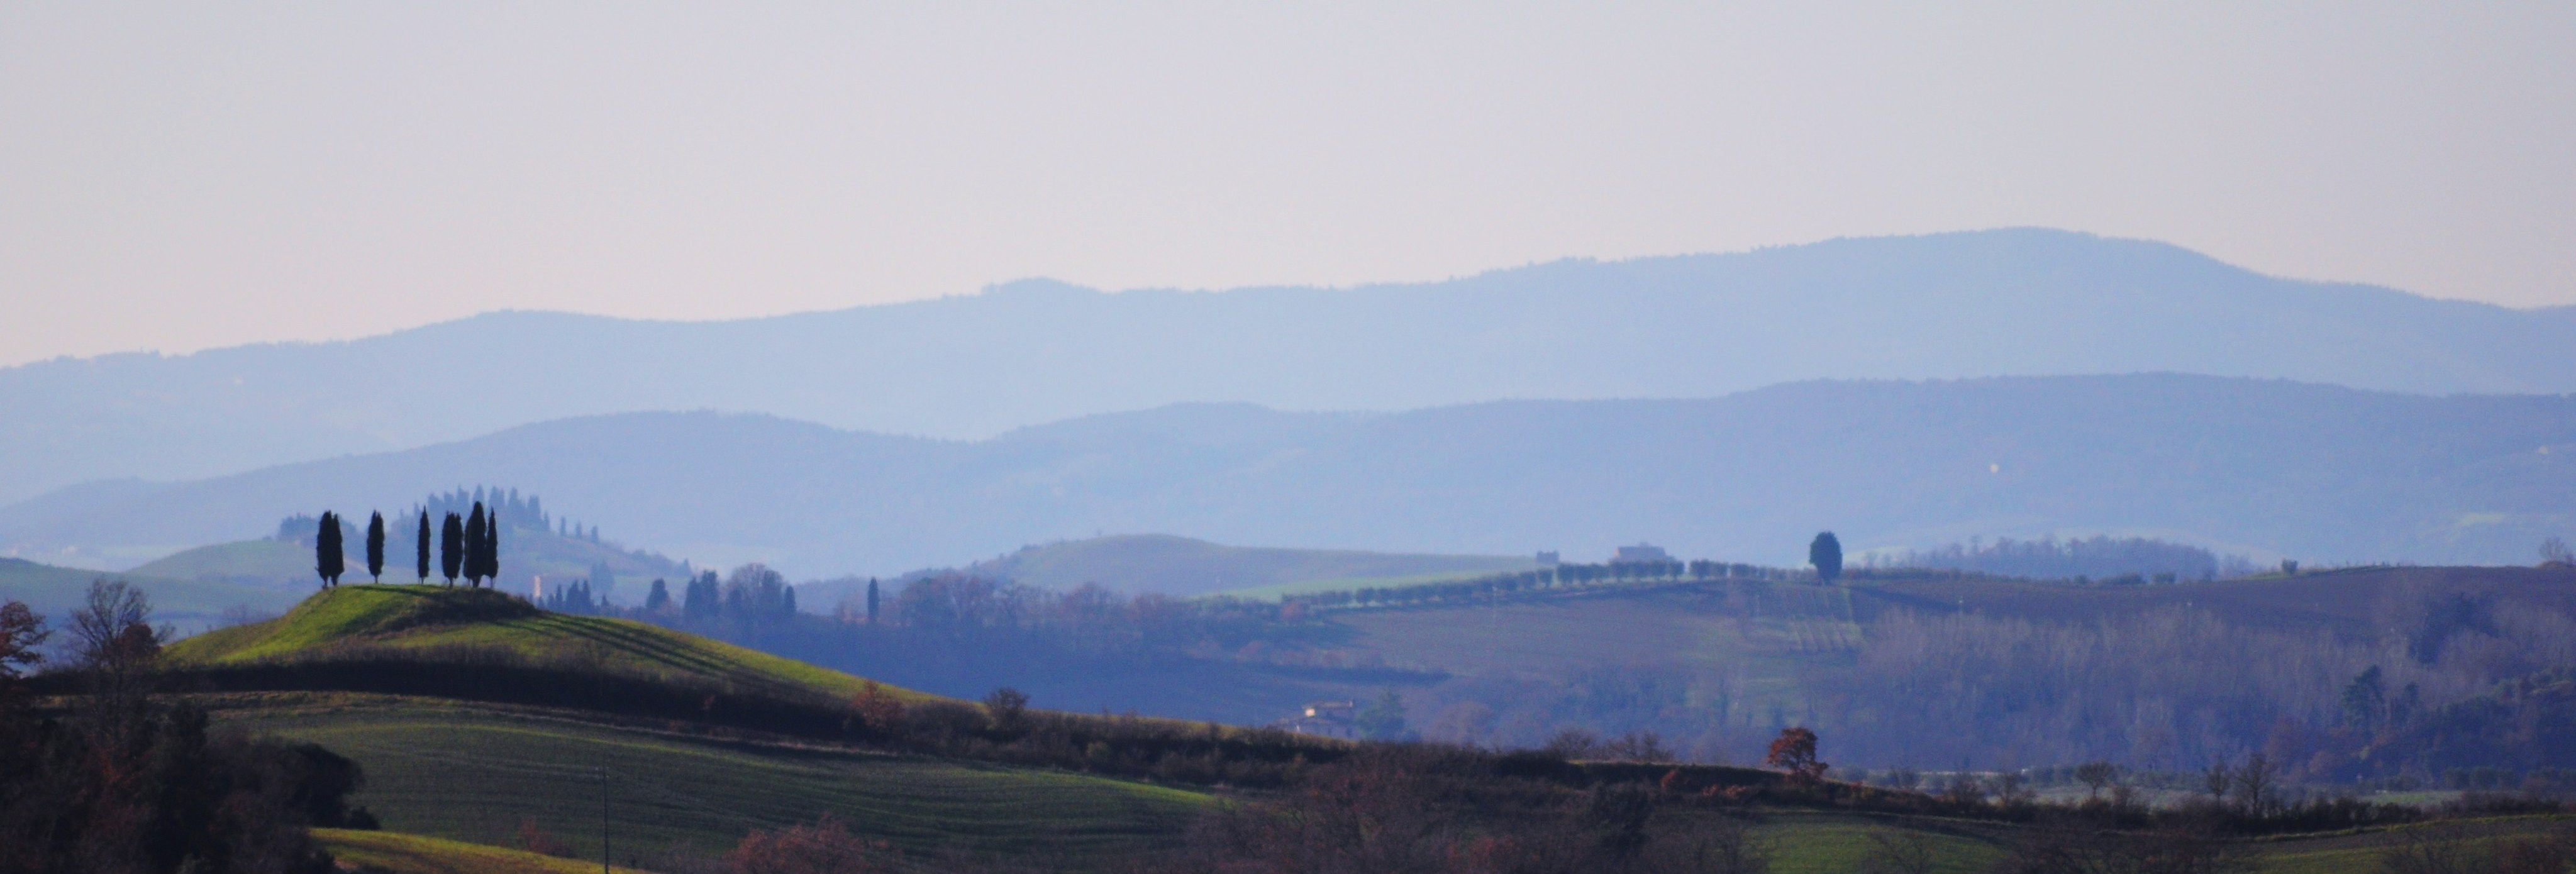 Itinerary in the great scenery of the Crete Senesi